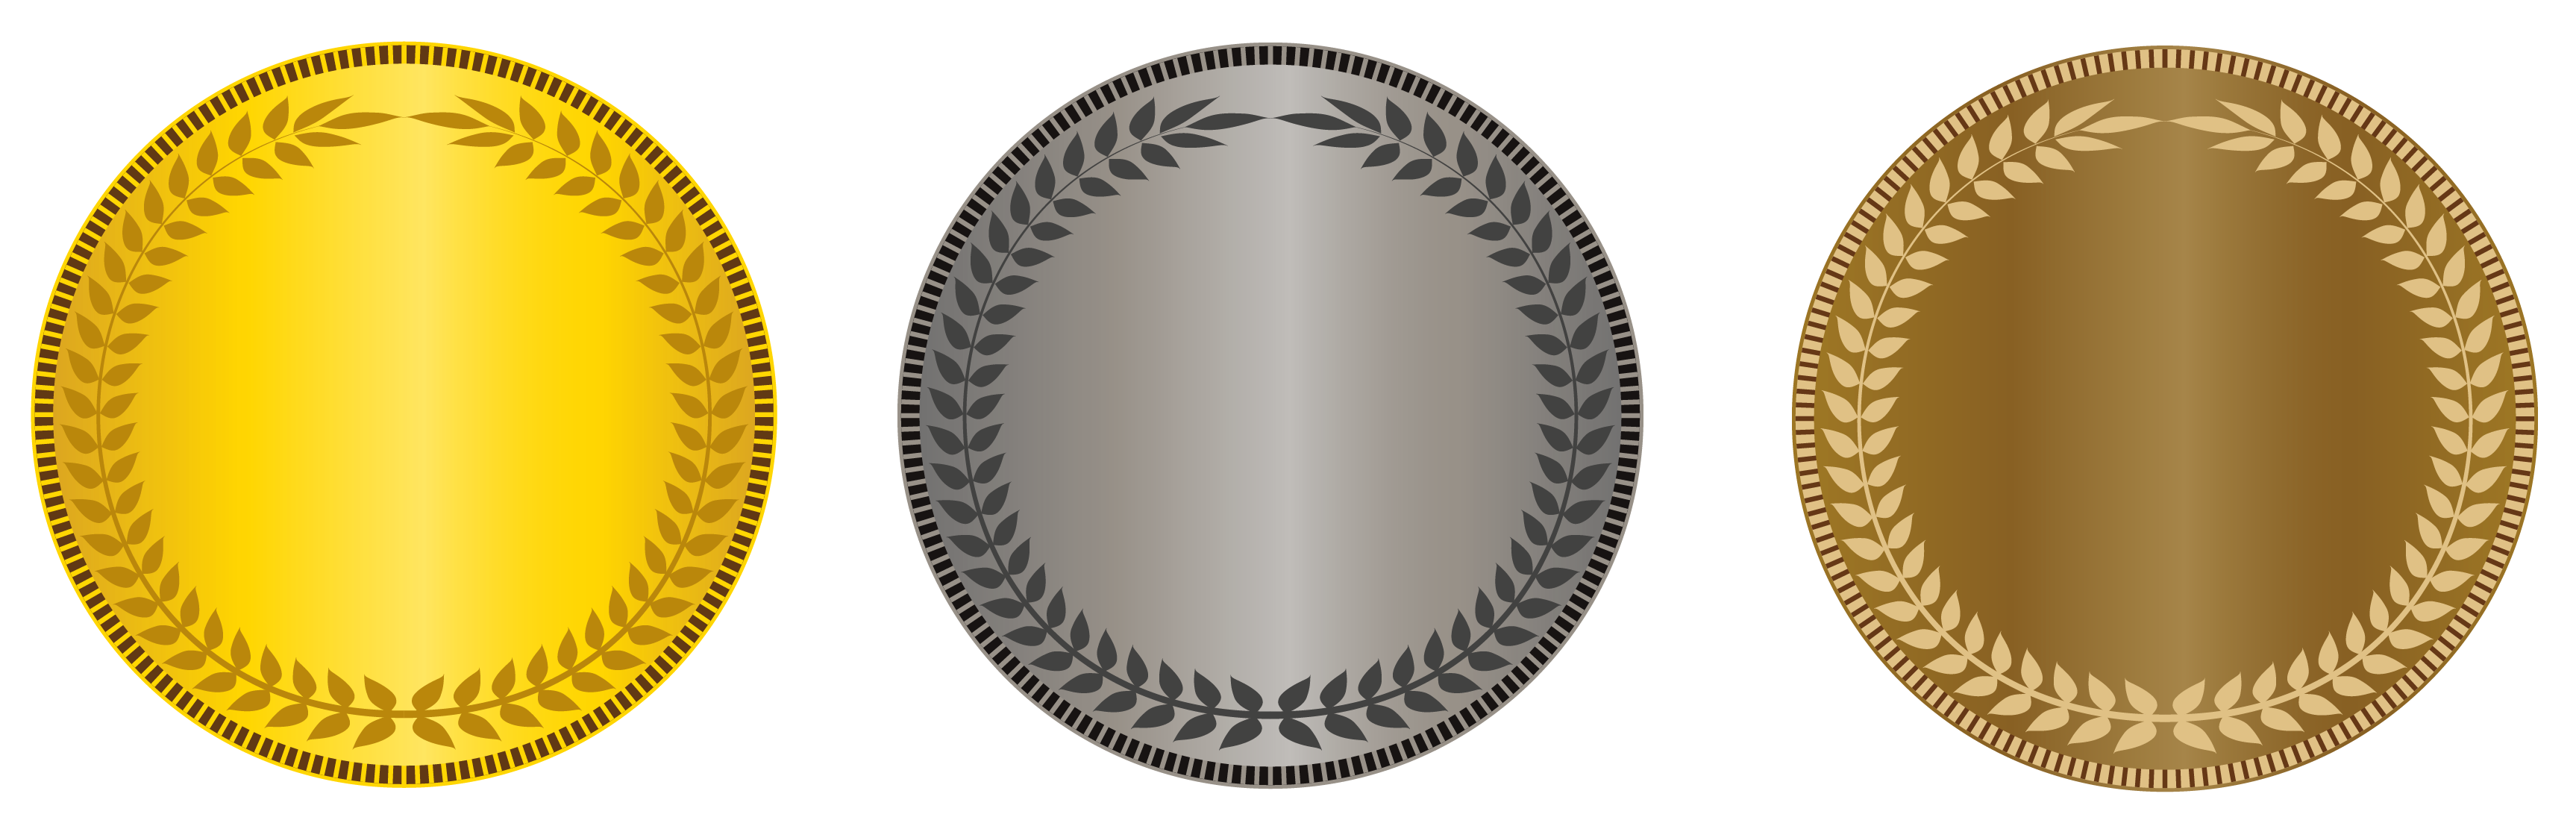 Silver star medal clipart picture black and white library Transparent Gold Silver Bronze Medals PNG Picture | Gallery ... picture black and white library